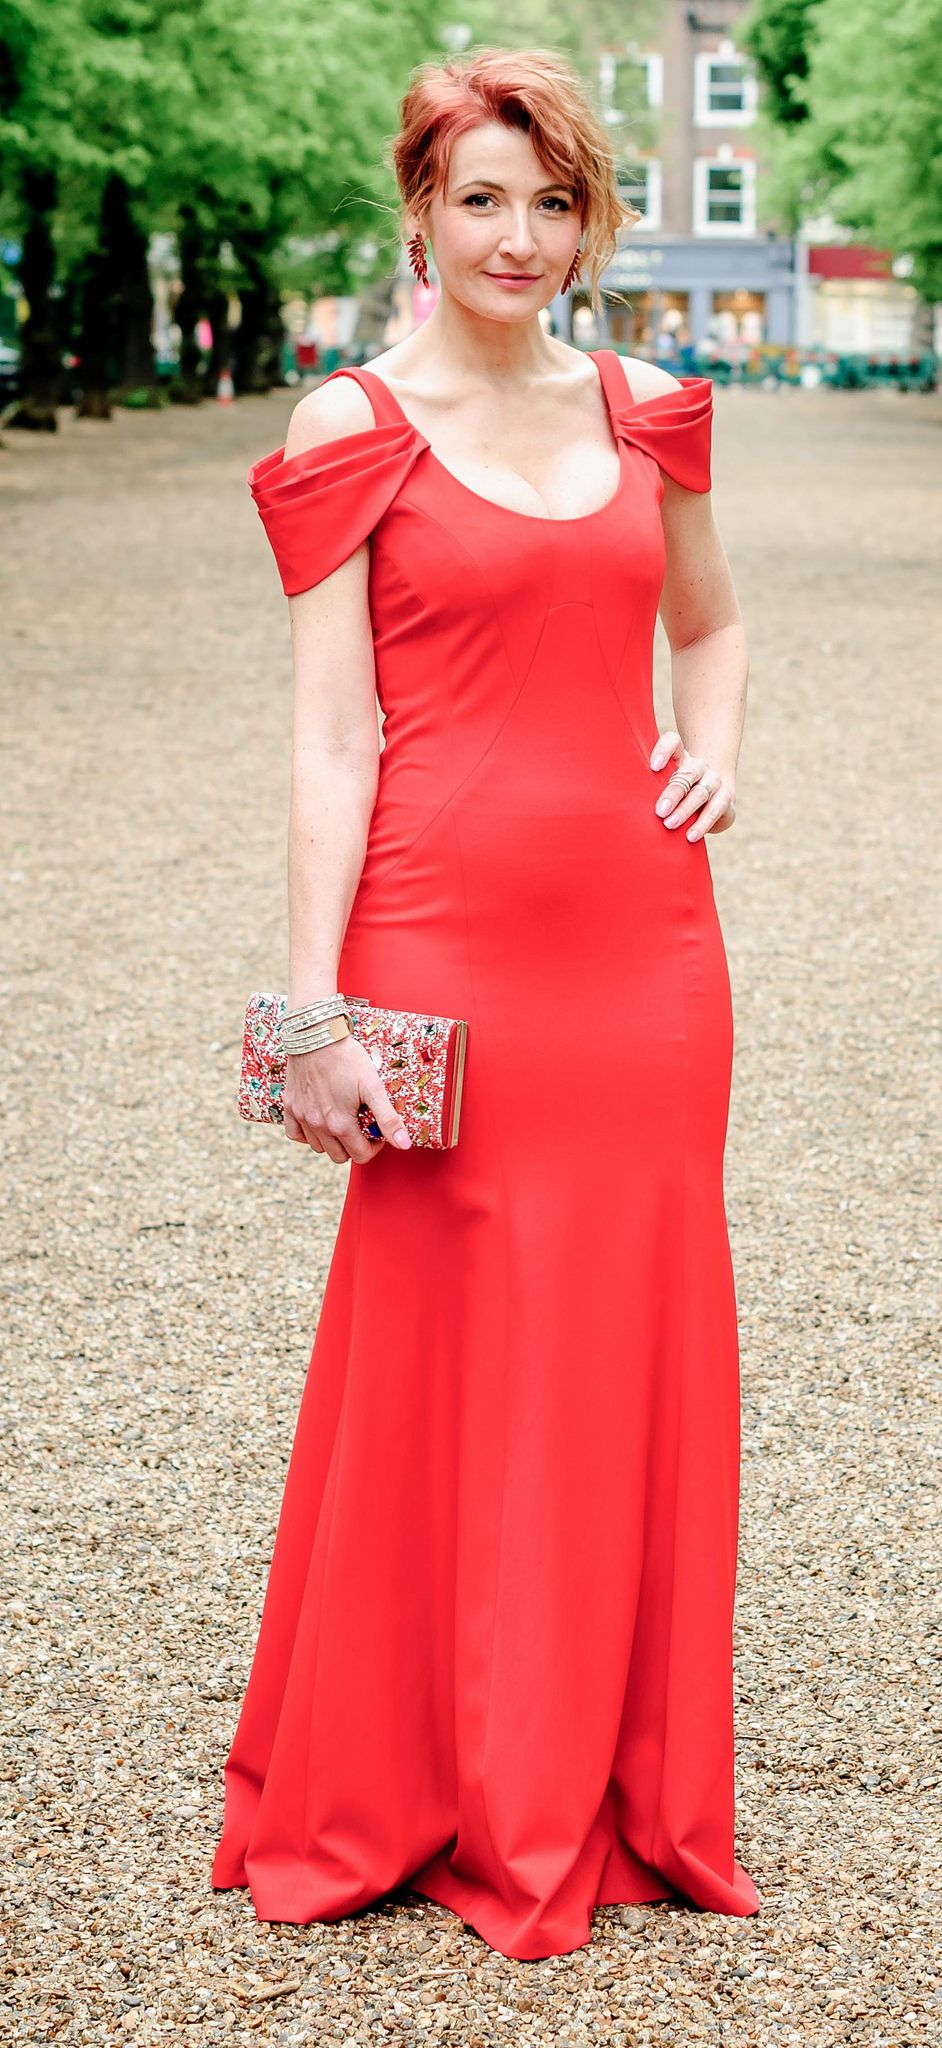 Awards ceremony outfit long red fitted gown with shoulder detail